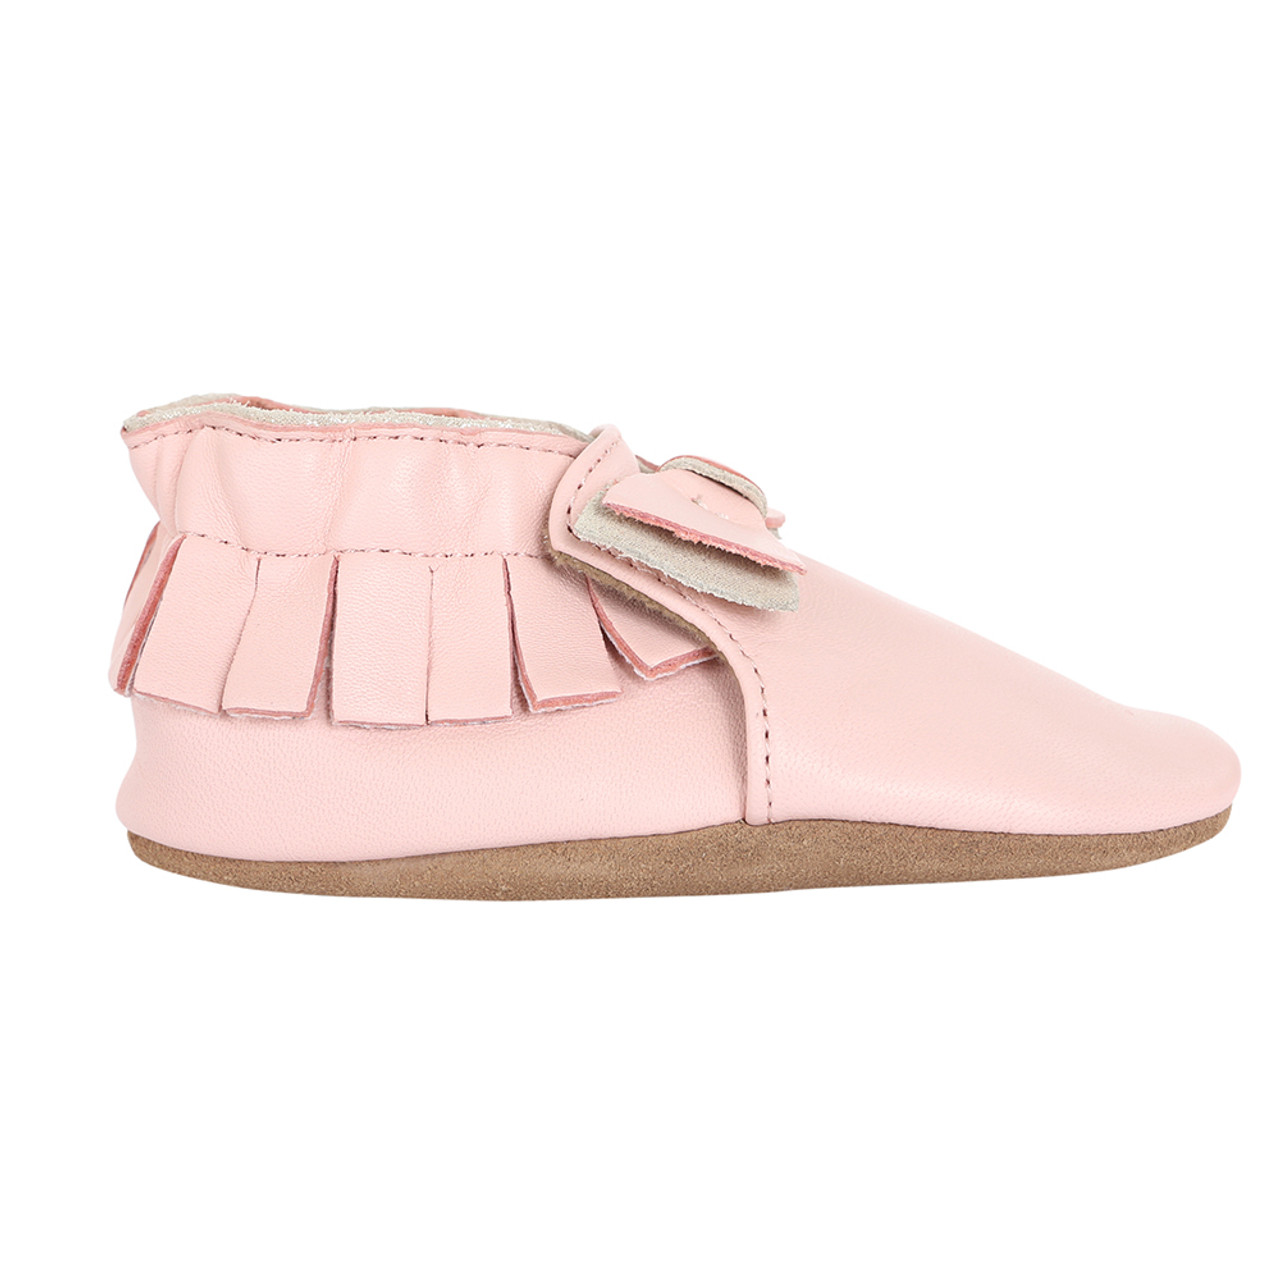 Robeez - Baby Girls' Leather Moccasin Maggie, Light Pink (12-18m)